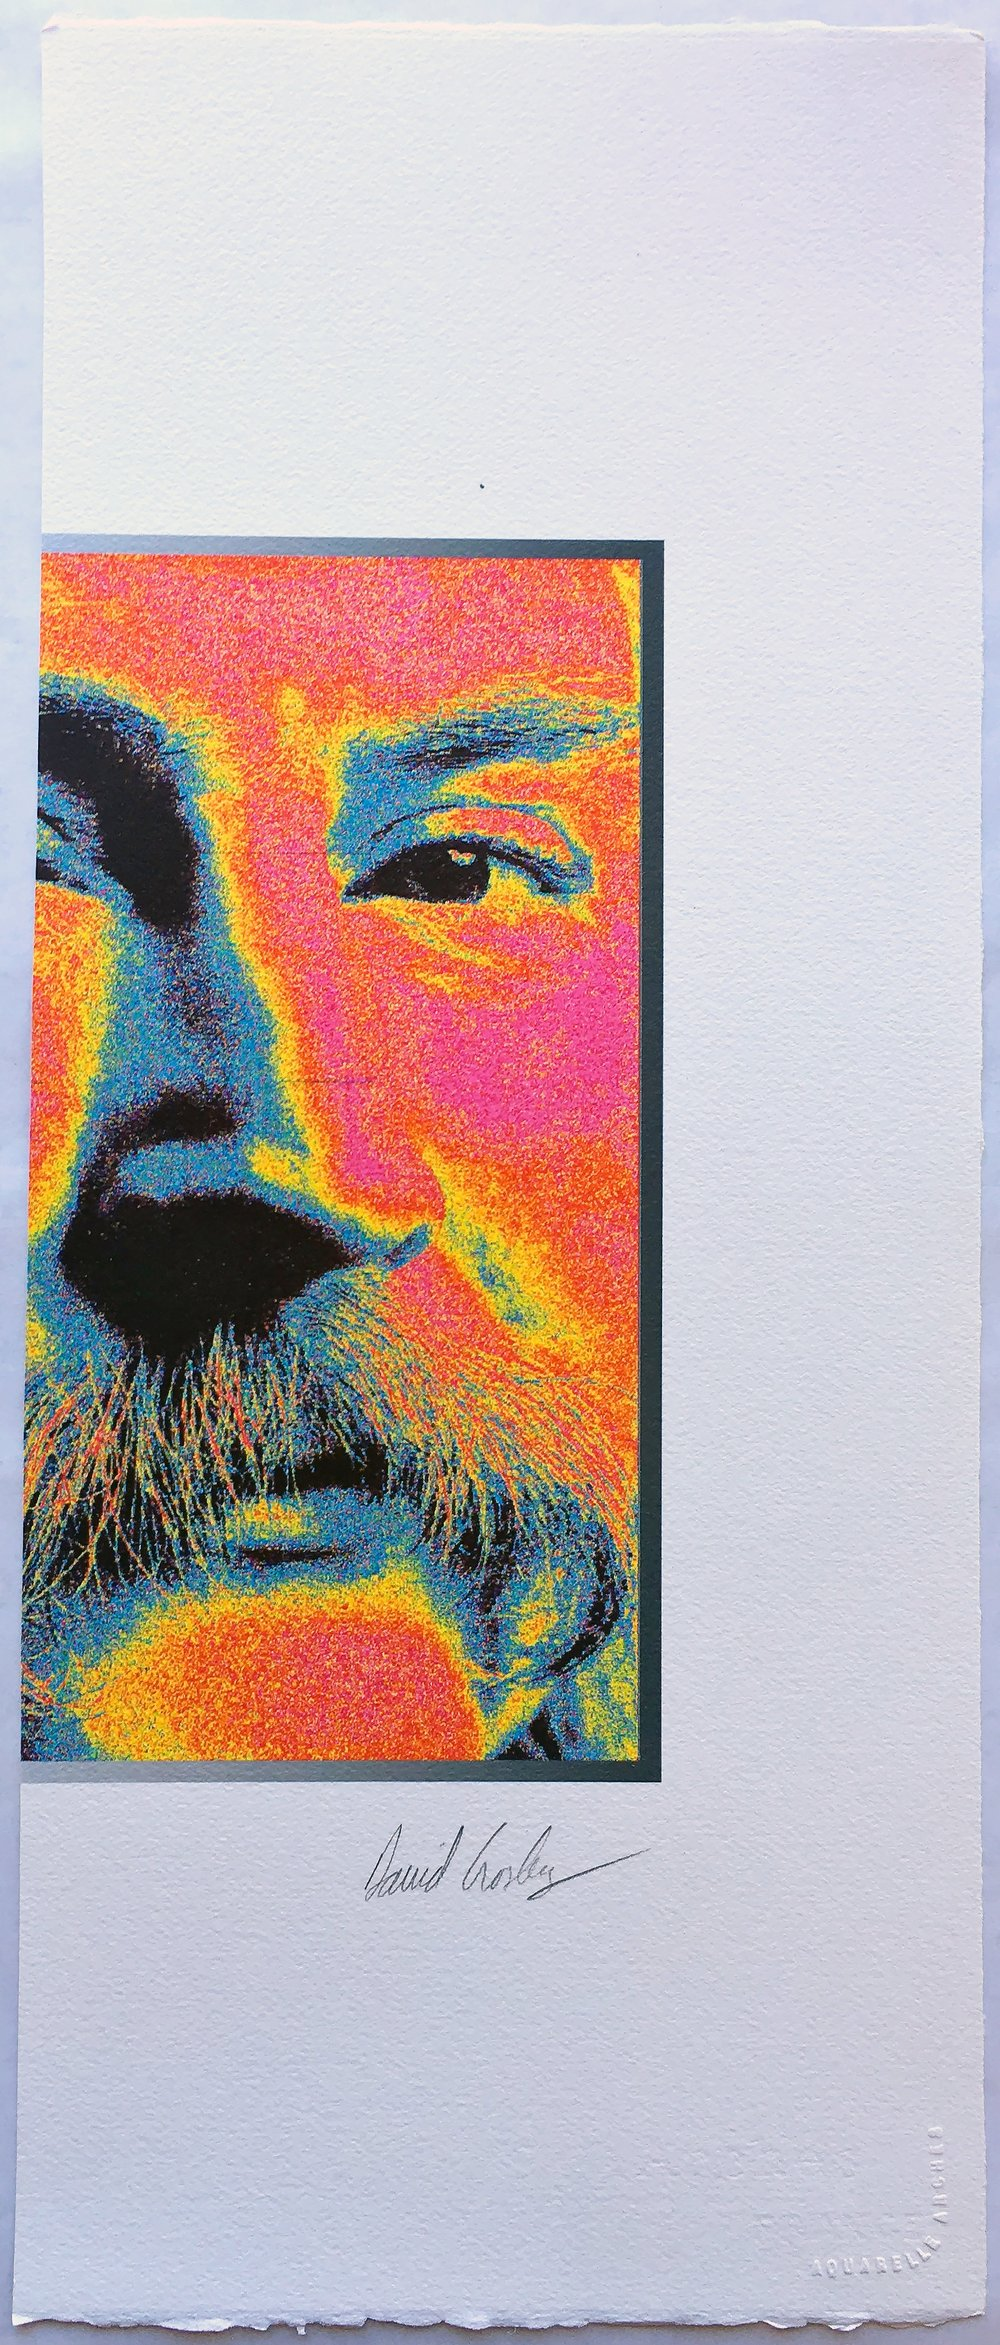 Possibly Graham Nash   David Crosby, ca. 1995  ITEM: DCP95  Original Jack Duggan Print/Sliced  Original Crosby Signature  9 x 221/4 inches  $200